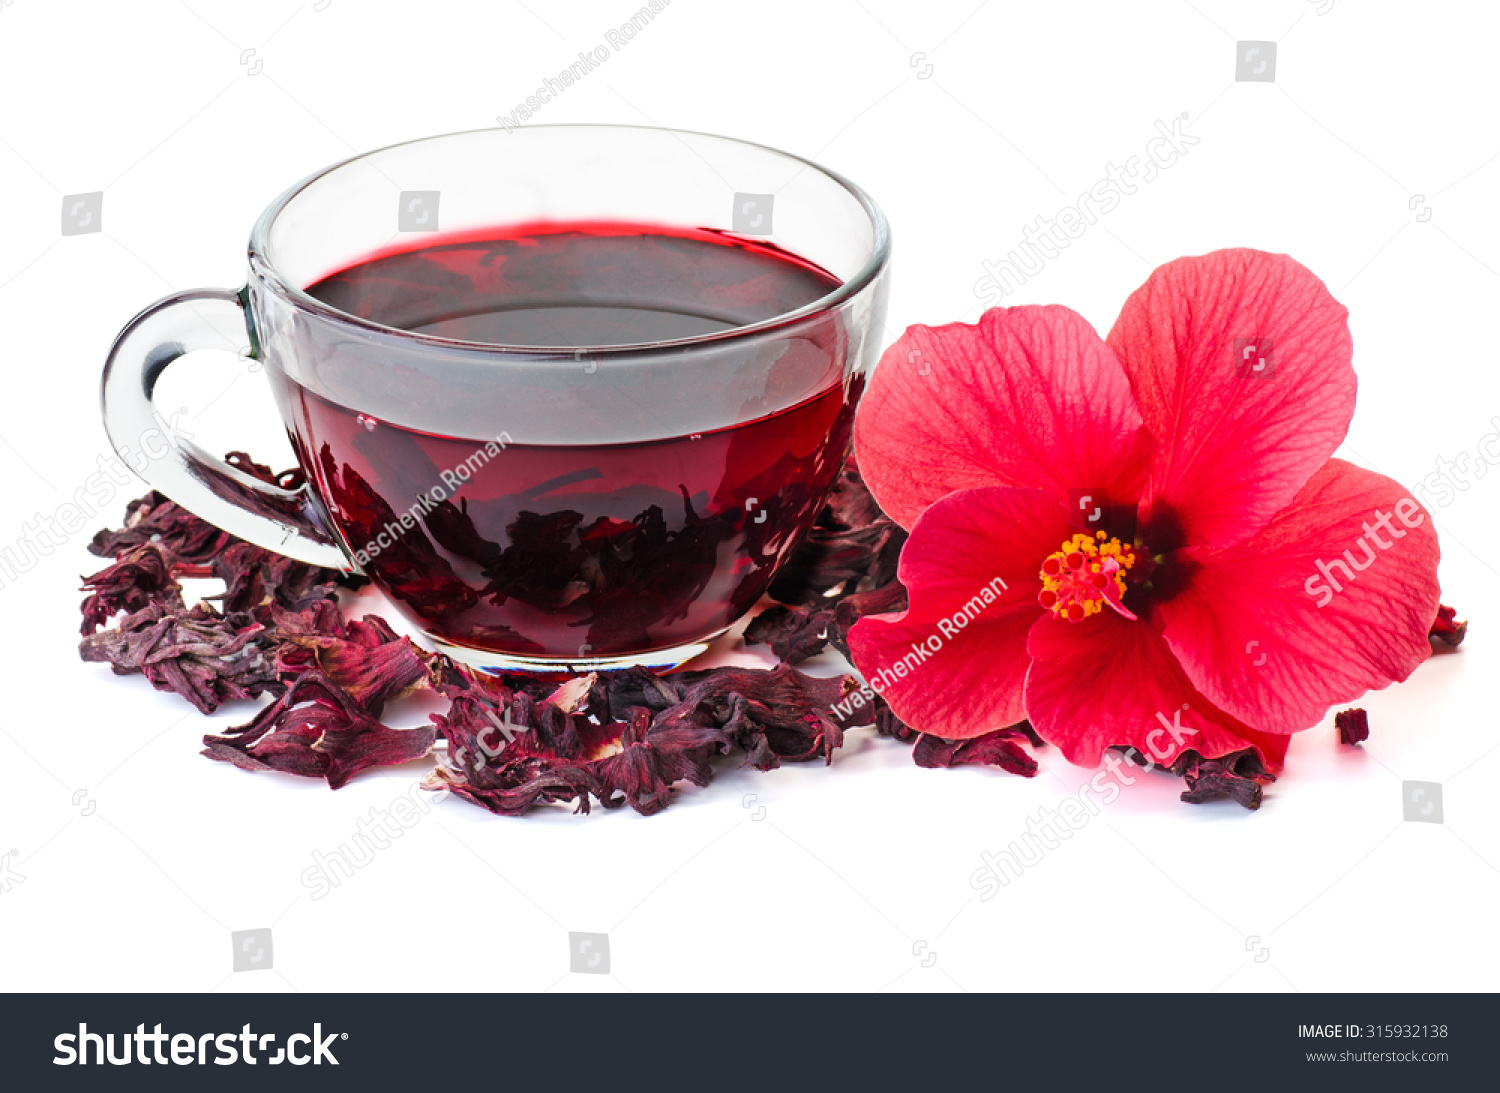 Hibiscus tea flower dry blossom isolated stock photo royalty free hibiscus tea flower and dry blossom isolated on white background izmirmasajfo Images